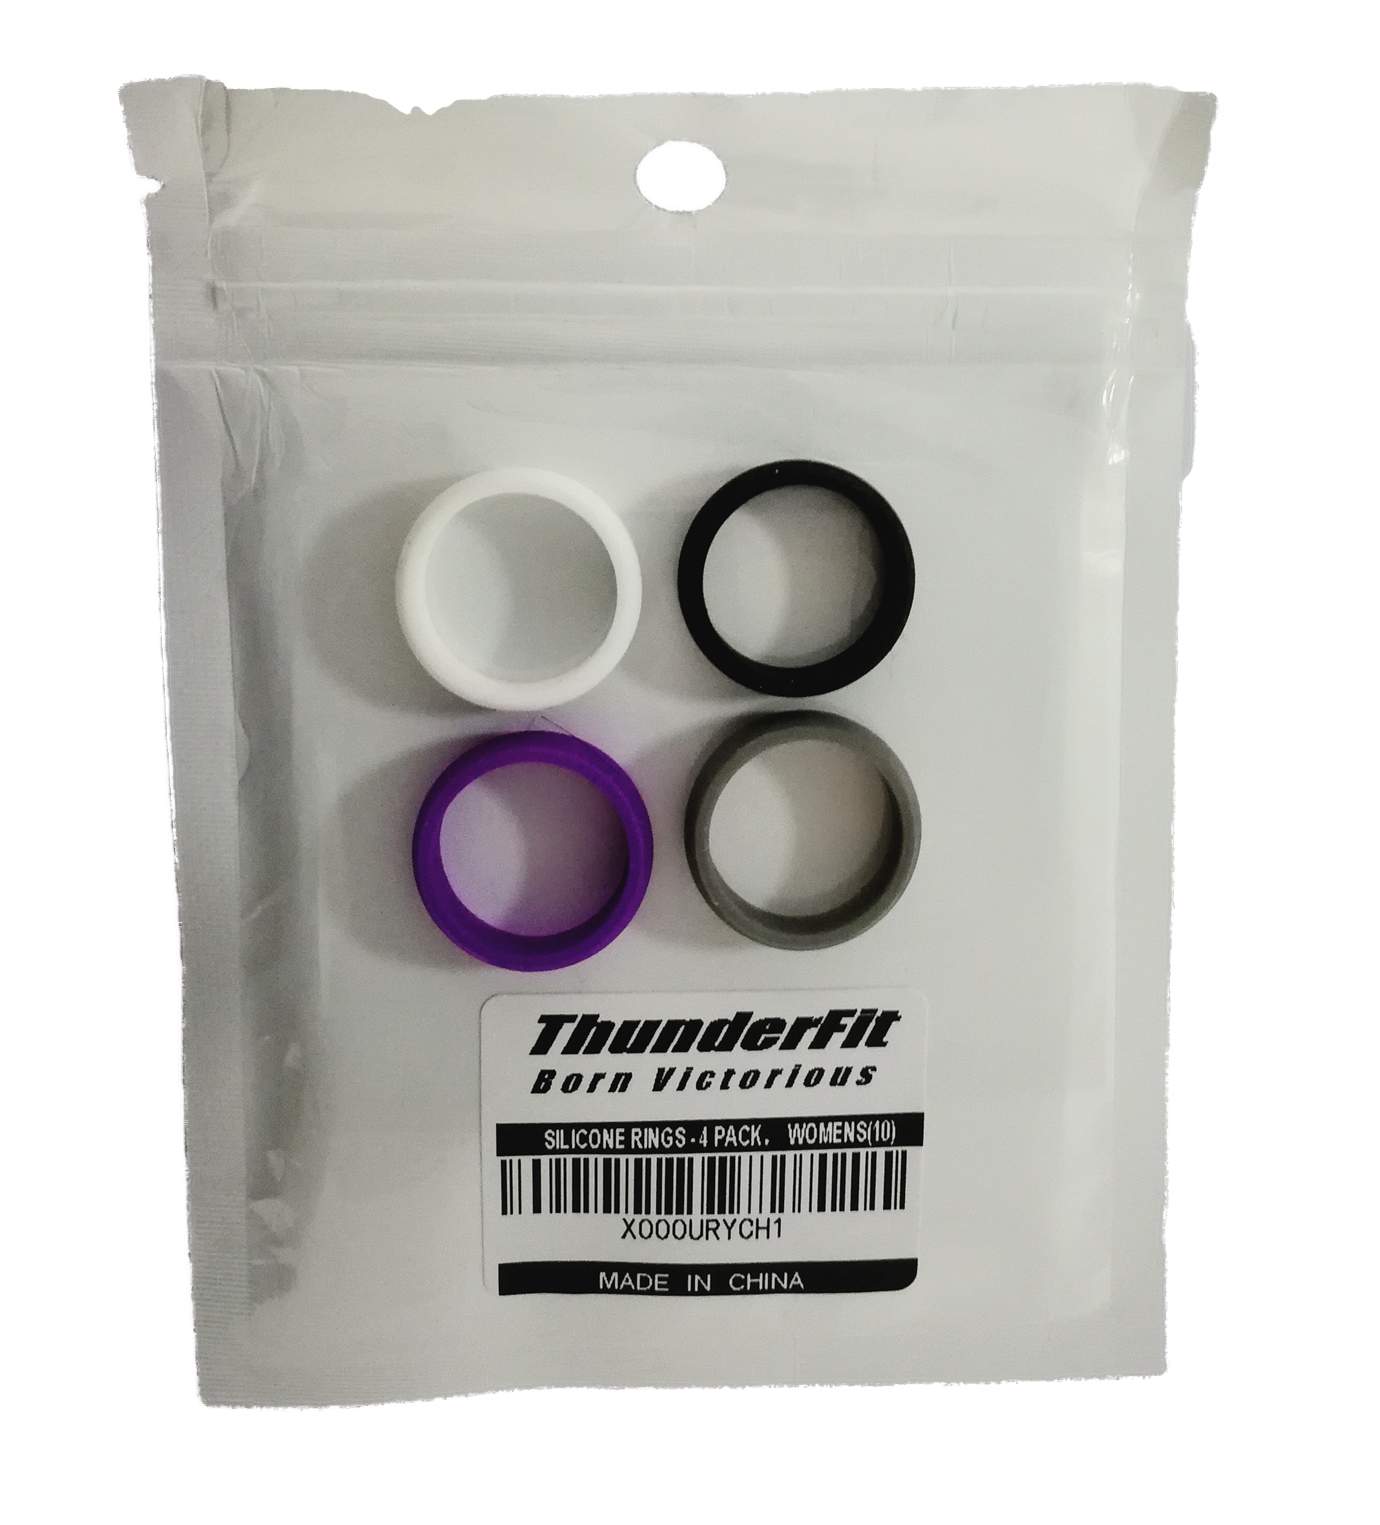 Silicone Wedding Rings - 4 Pack - Purple, Grey, White, Black (5.5mm Wide)